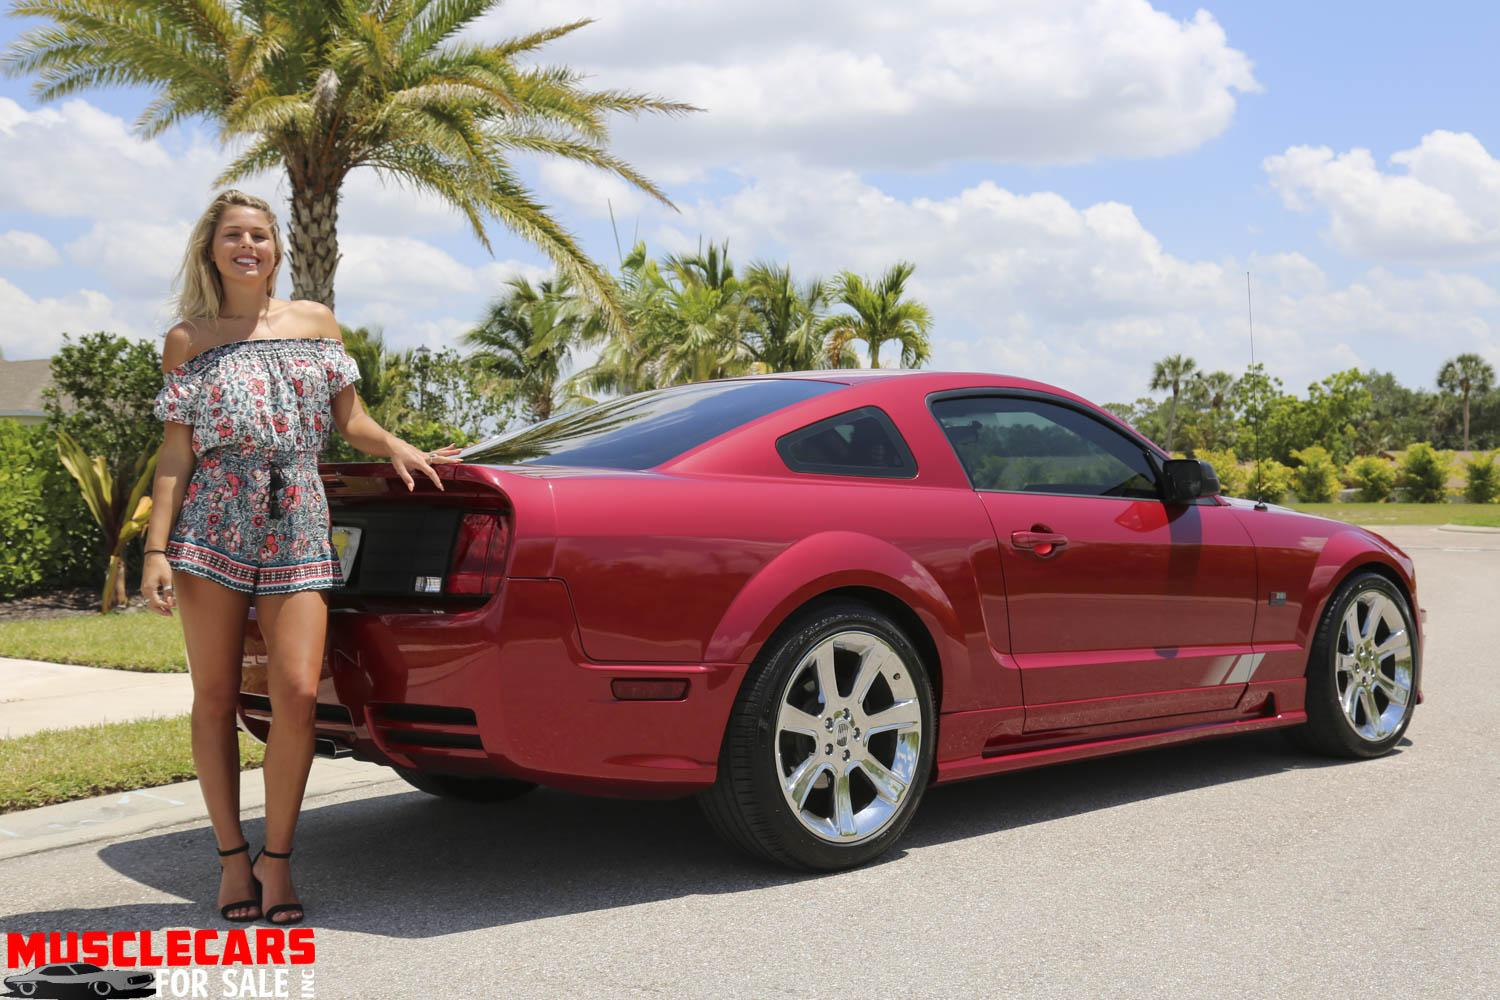 Used 2005 Ford Mustang Saleen Saleen for sale Sold at Muscle Cars for Sale Inc. in Fort Myers FL 33912 6